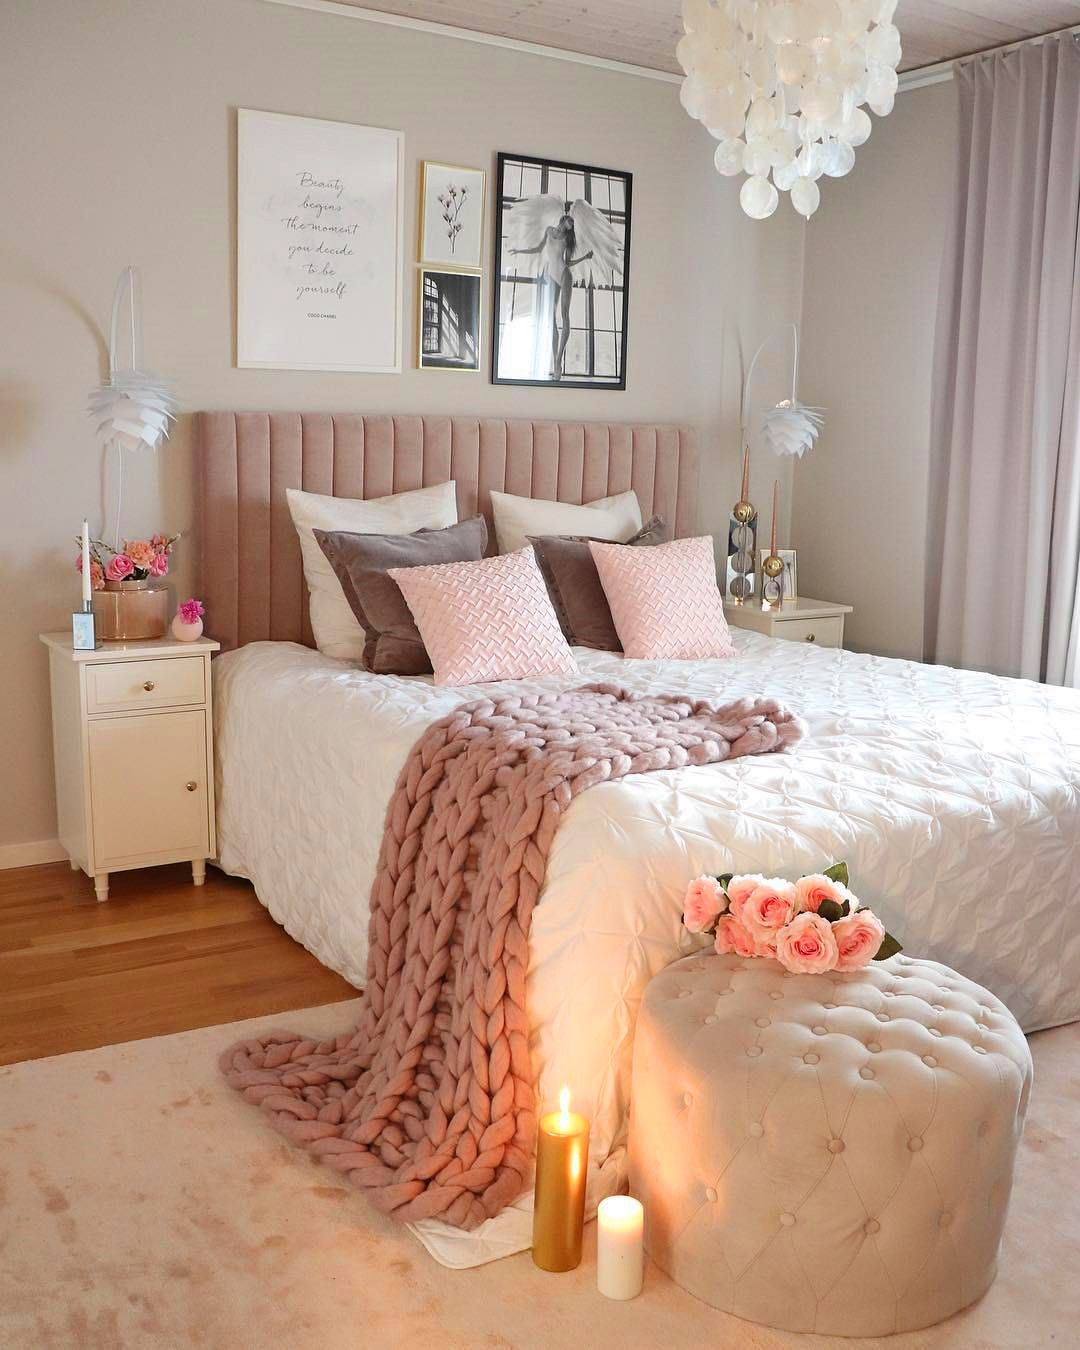 50 Best Bedroom Decor And Design Ideas With Farmhouse Style Room Inspiration Bedroom Bedroom Decor Room Design Bedroom Home decor ideas bedroom